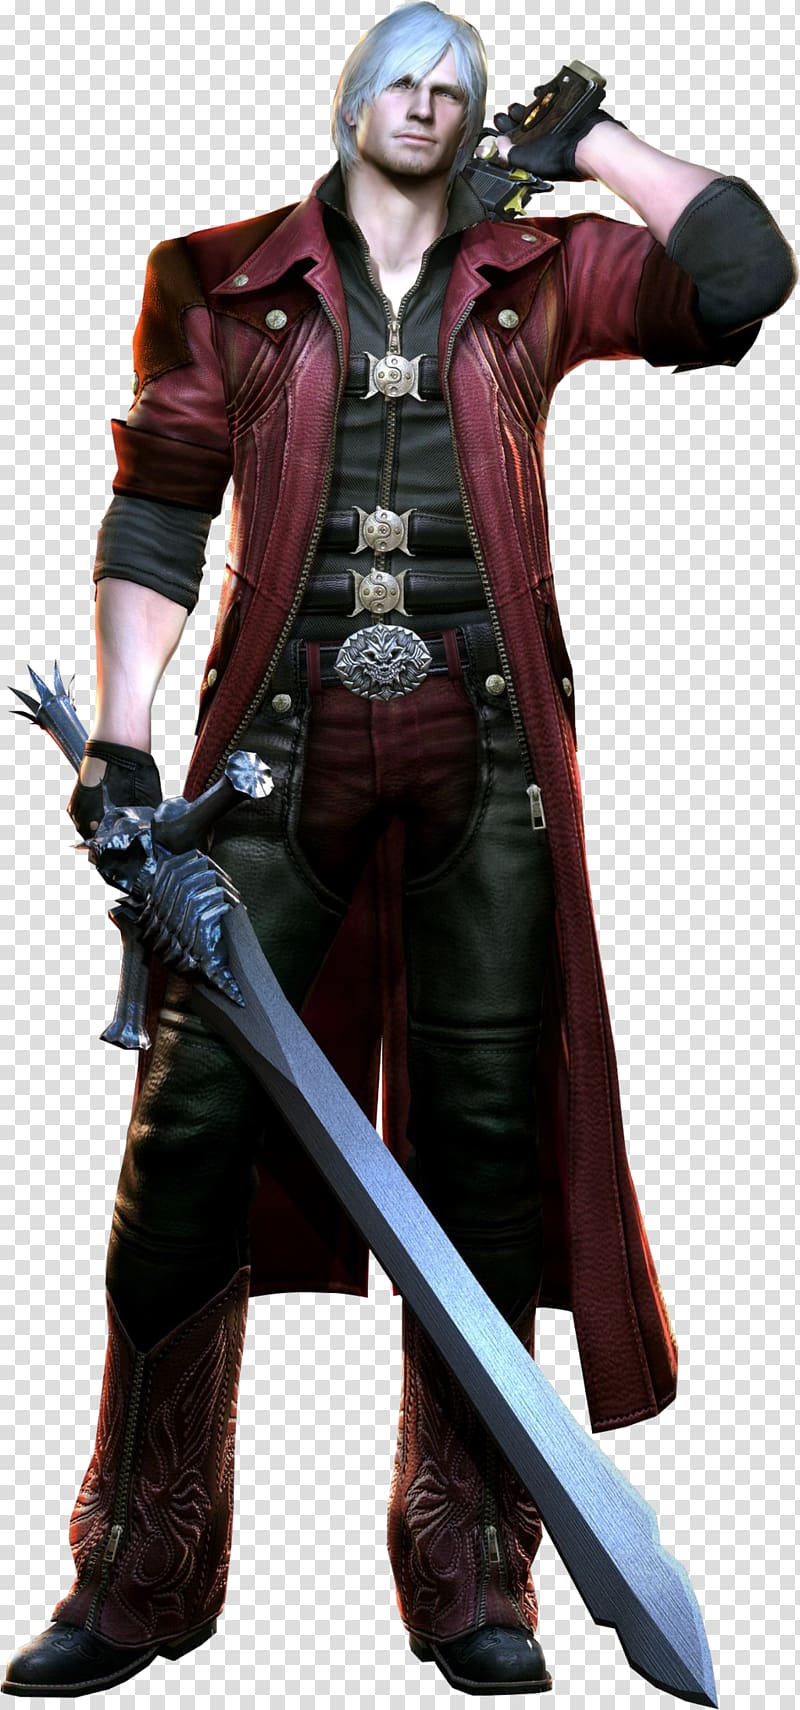 Devil May Cry 4 Devil May Cry 3: Dante\'s Awakening Devil May Cry 2.